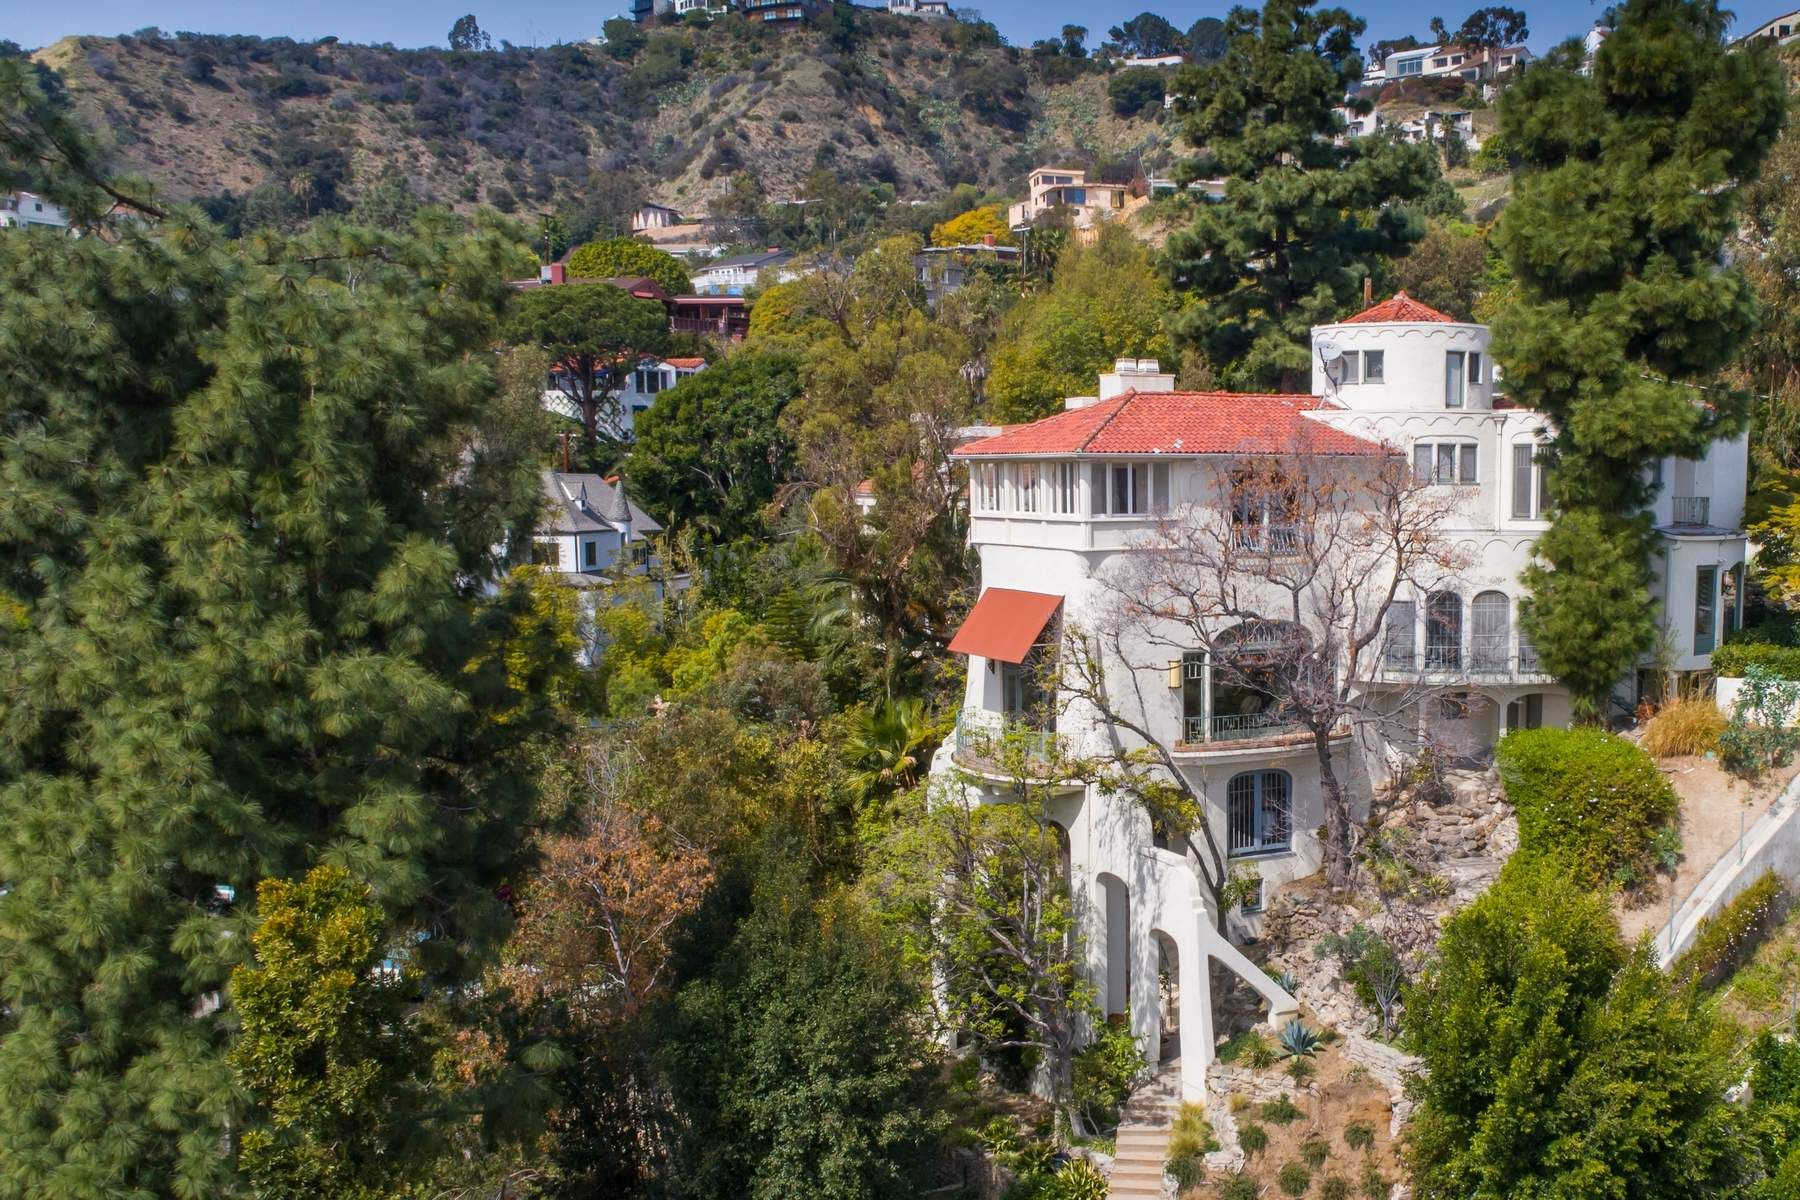 Single Family Home for Sale at Architectural Tour De Fource 8142 Laurel View Drive, Los Angeles, California, 90069 United States